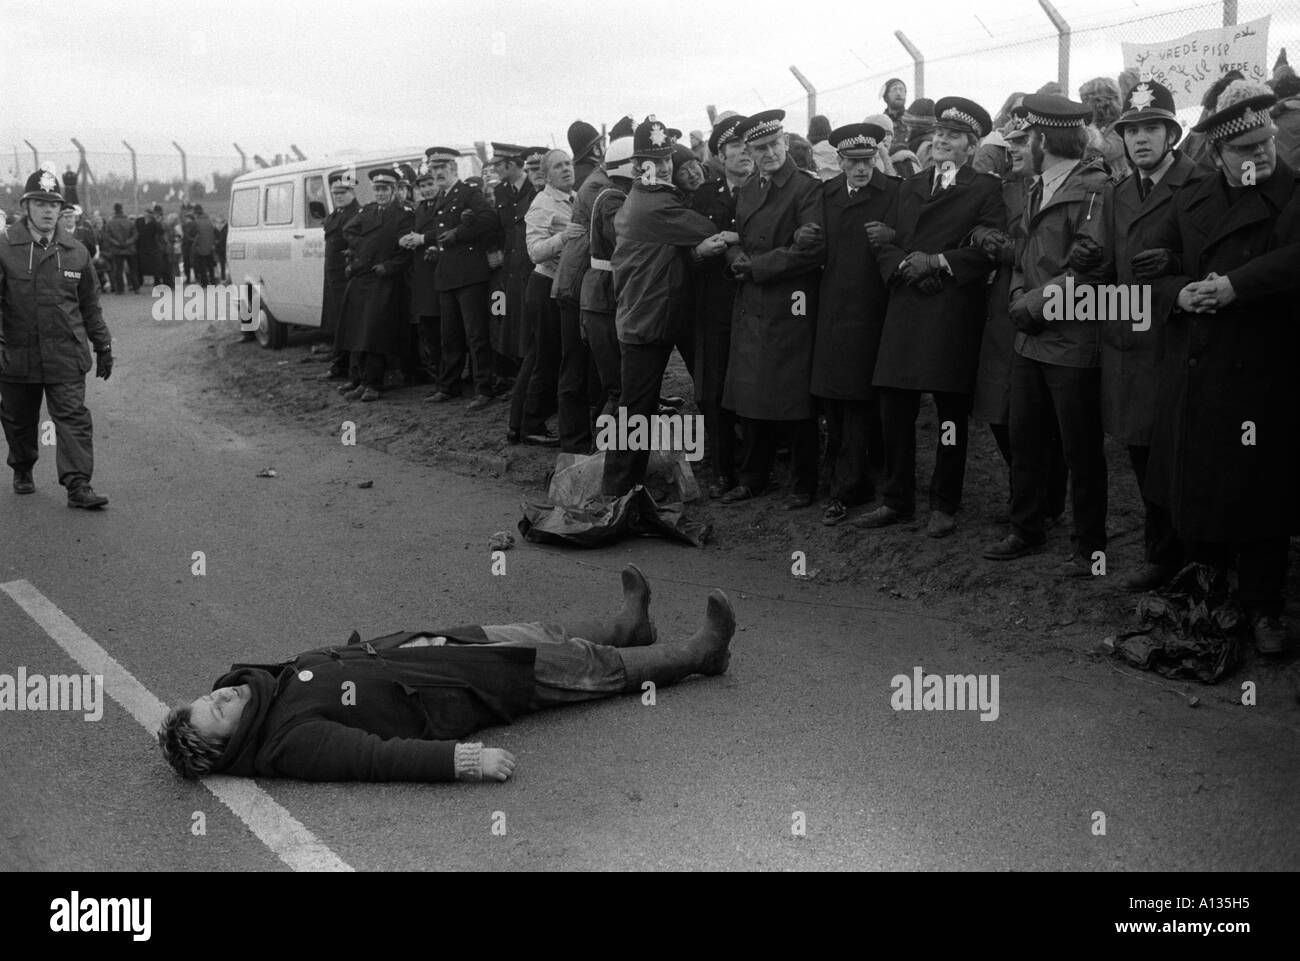 Blockade der USAF nukleare Marschflugkörper Air Base in Greenham Common Berkshire England 1983 1980s UK HOMER SYKES Stockfoto